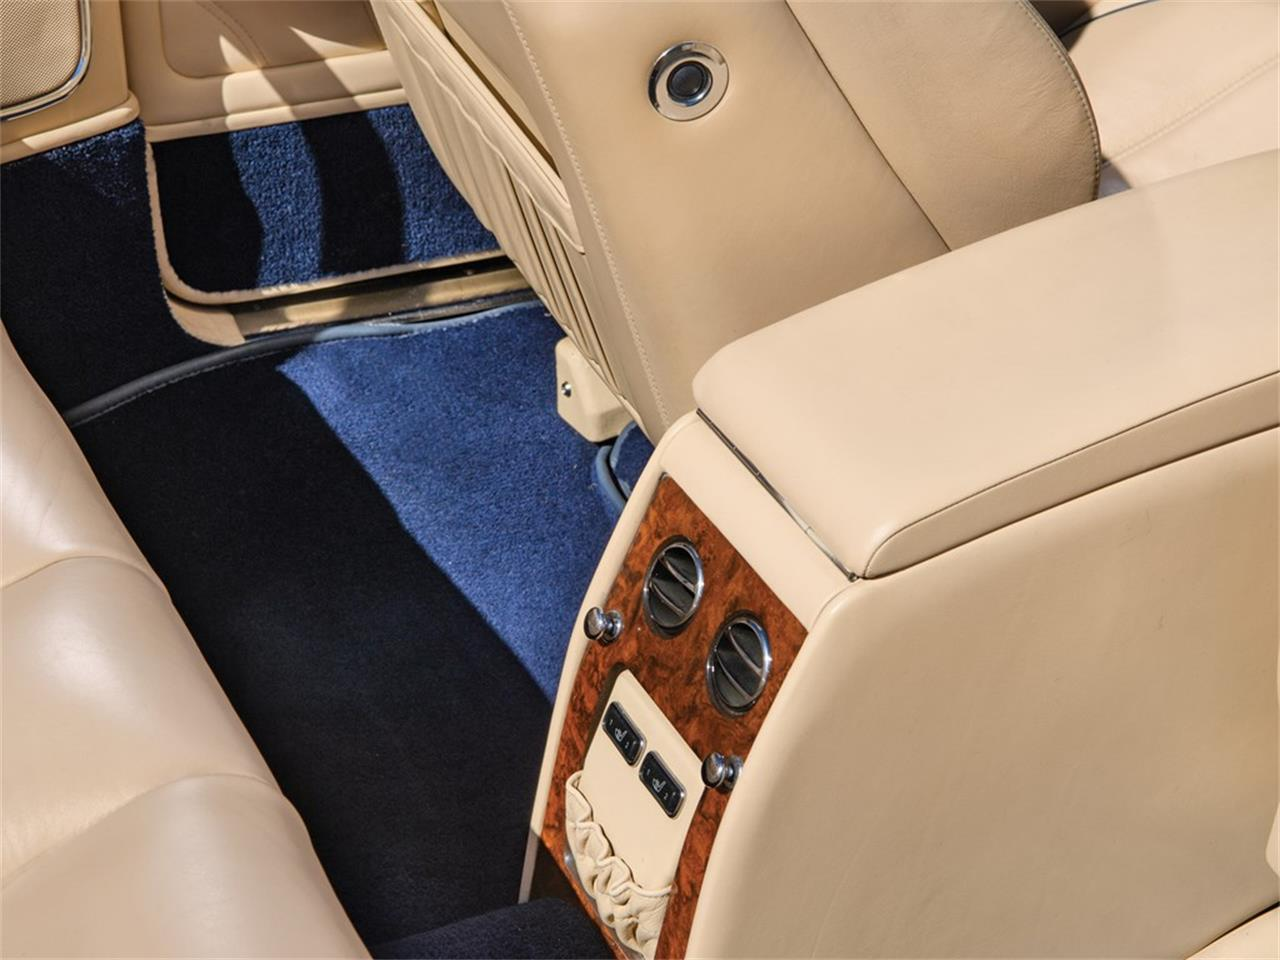 2000 Rolls-Royce Corniche for sale in Essen, Other – photo 13